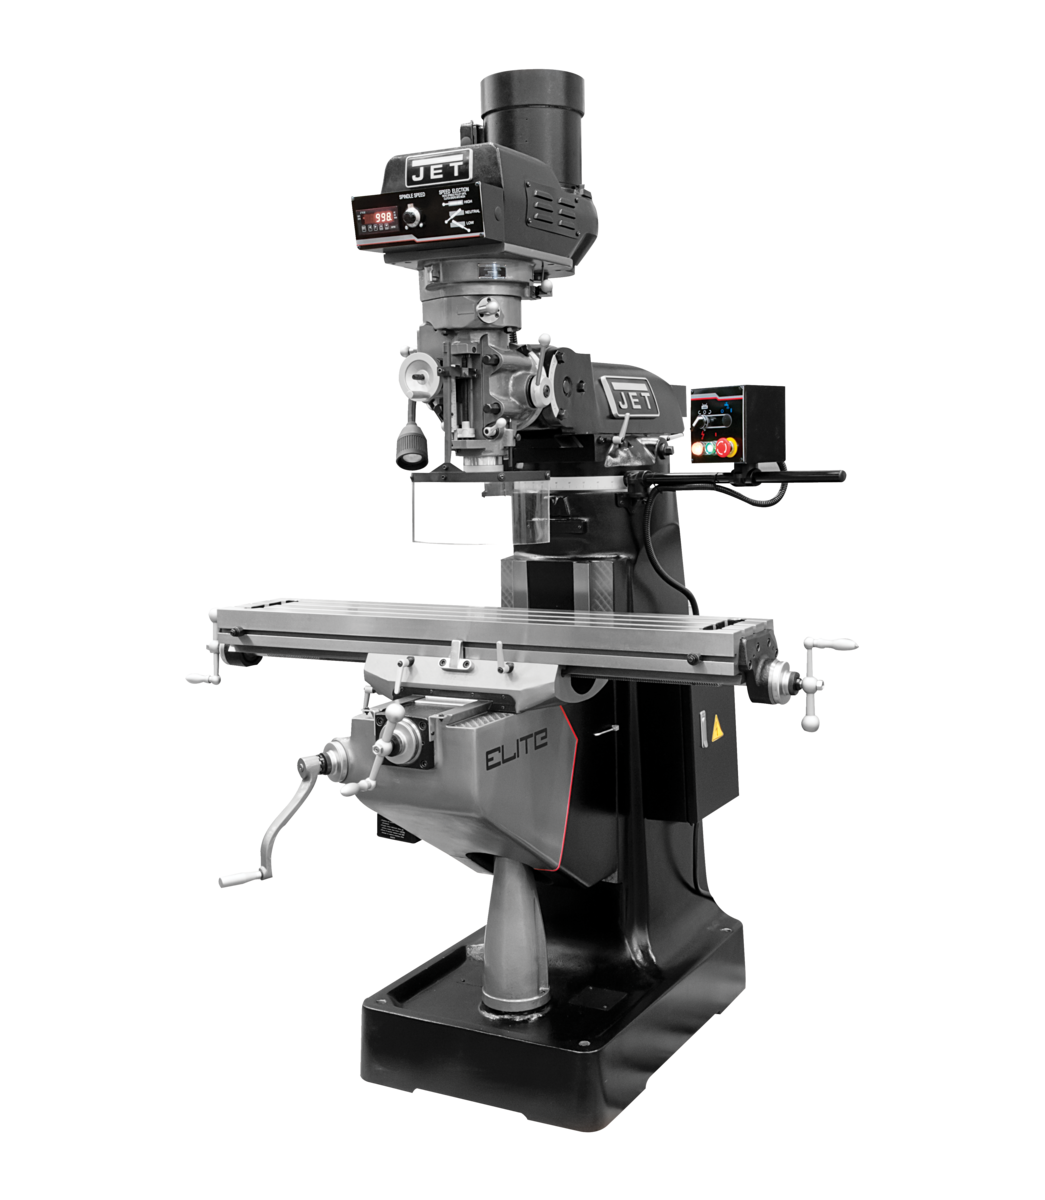 EVS-949 Mill with 2-Axis ACU-RITE 203 DRO and X, Y, Z-Axis JET Powerfeeds